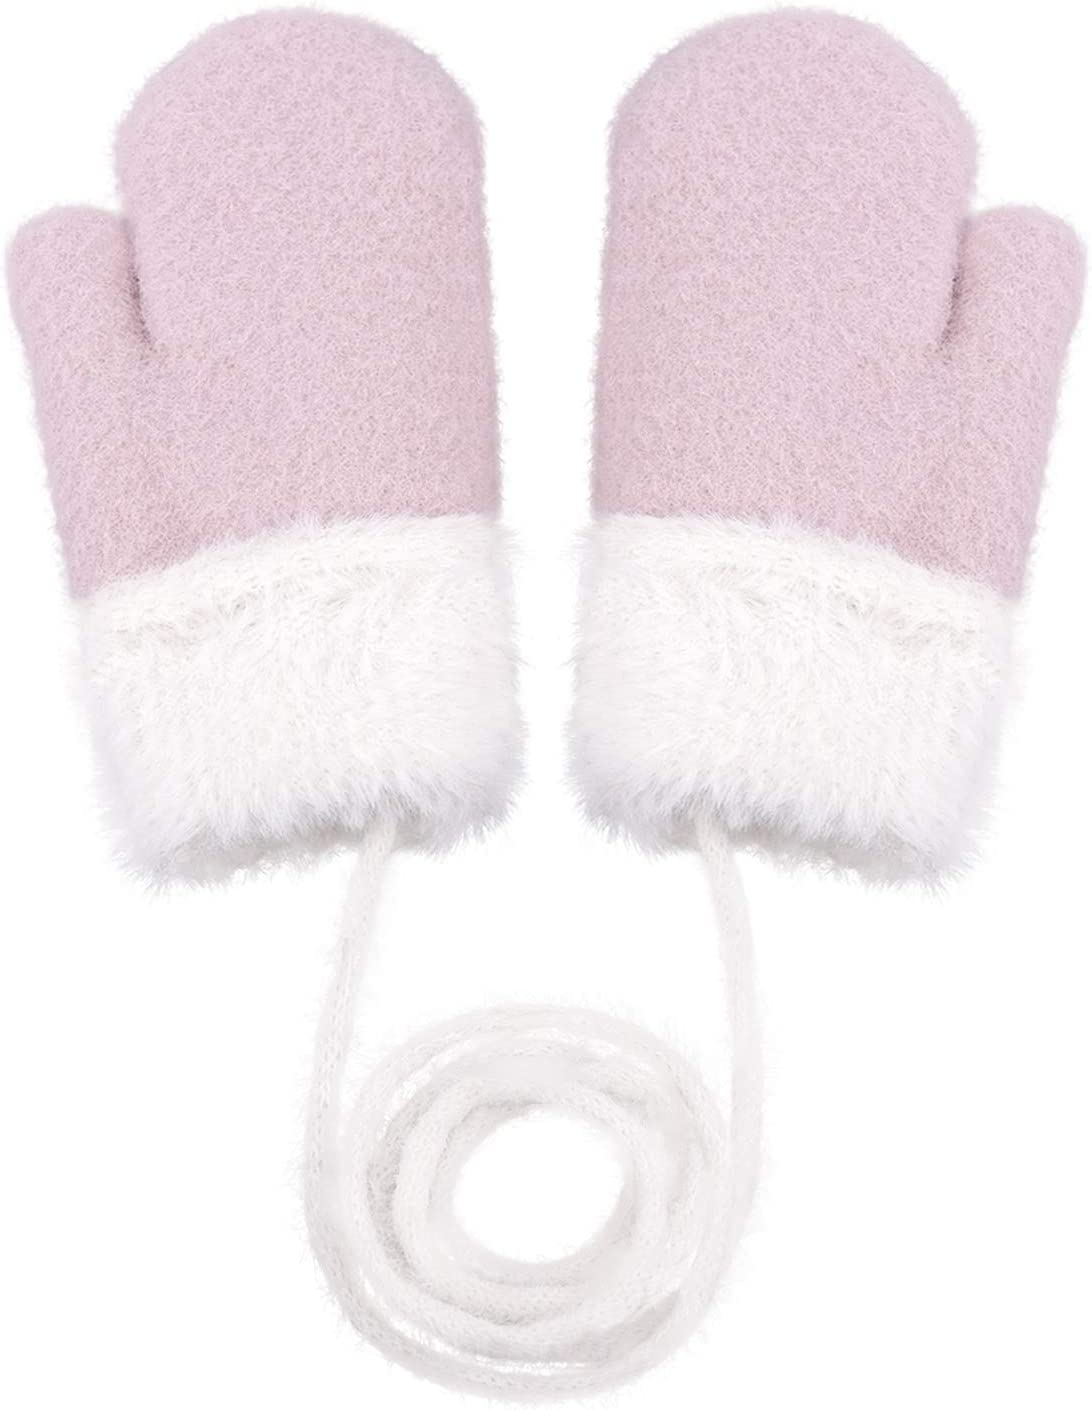 Toddler and Kids' Mittens Warm Plush Lined Gloves Thickened Full Finger Mittens with String for Boys Girls 1-4 Year